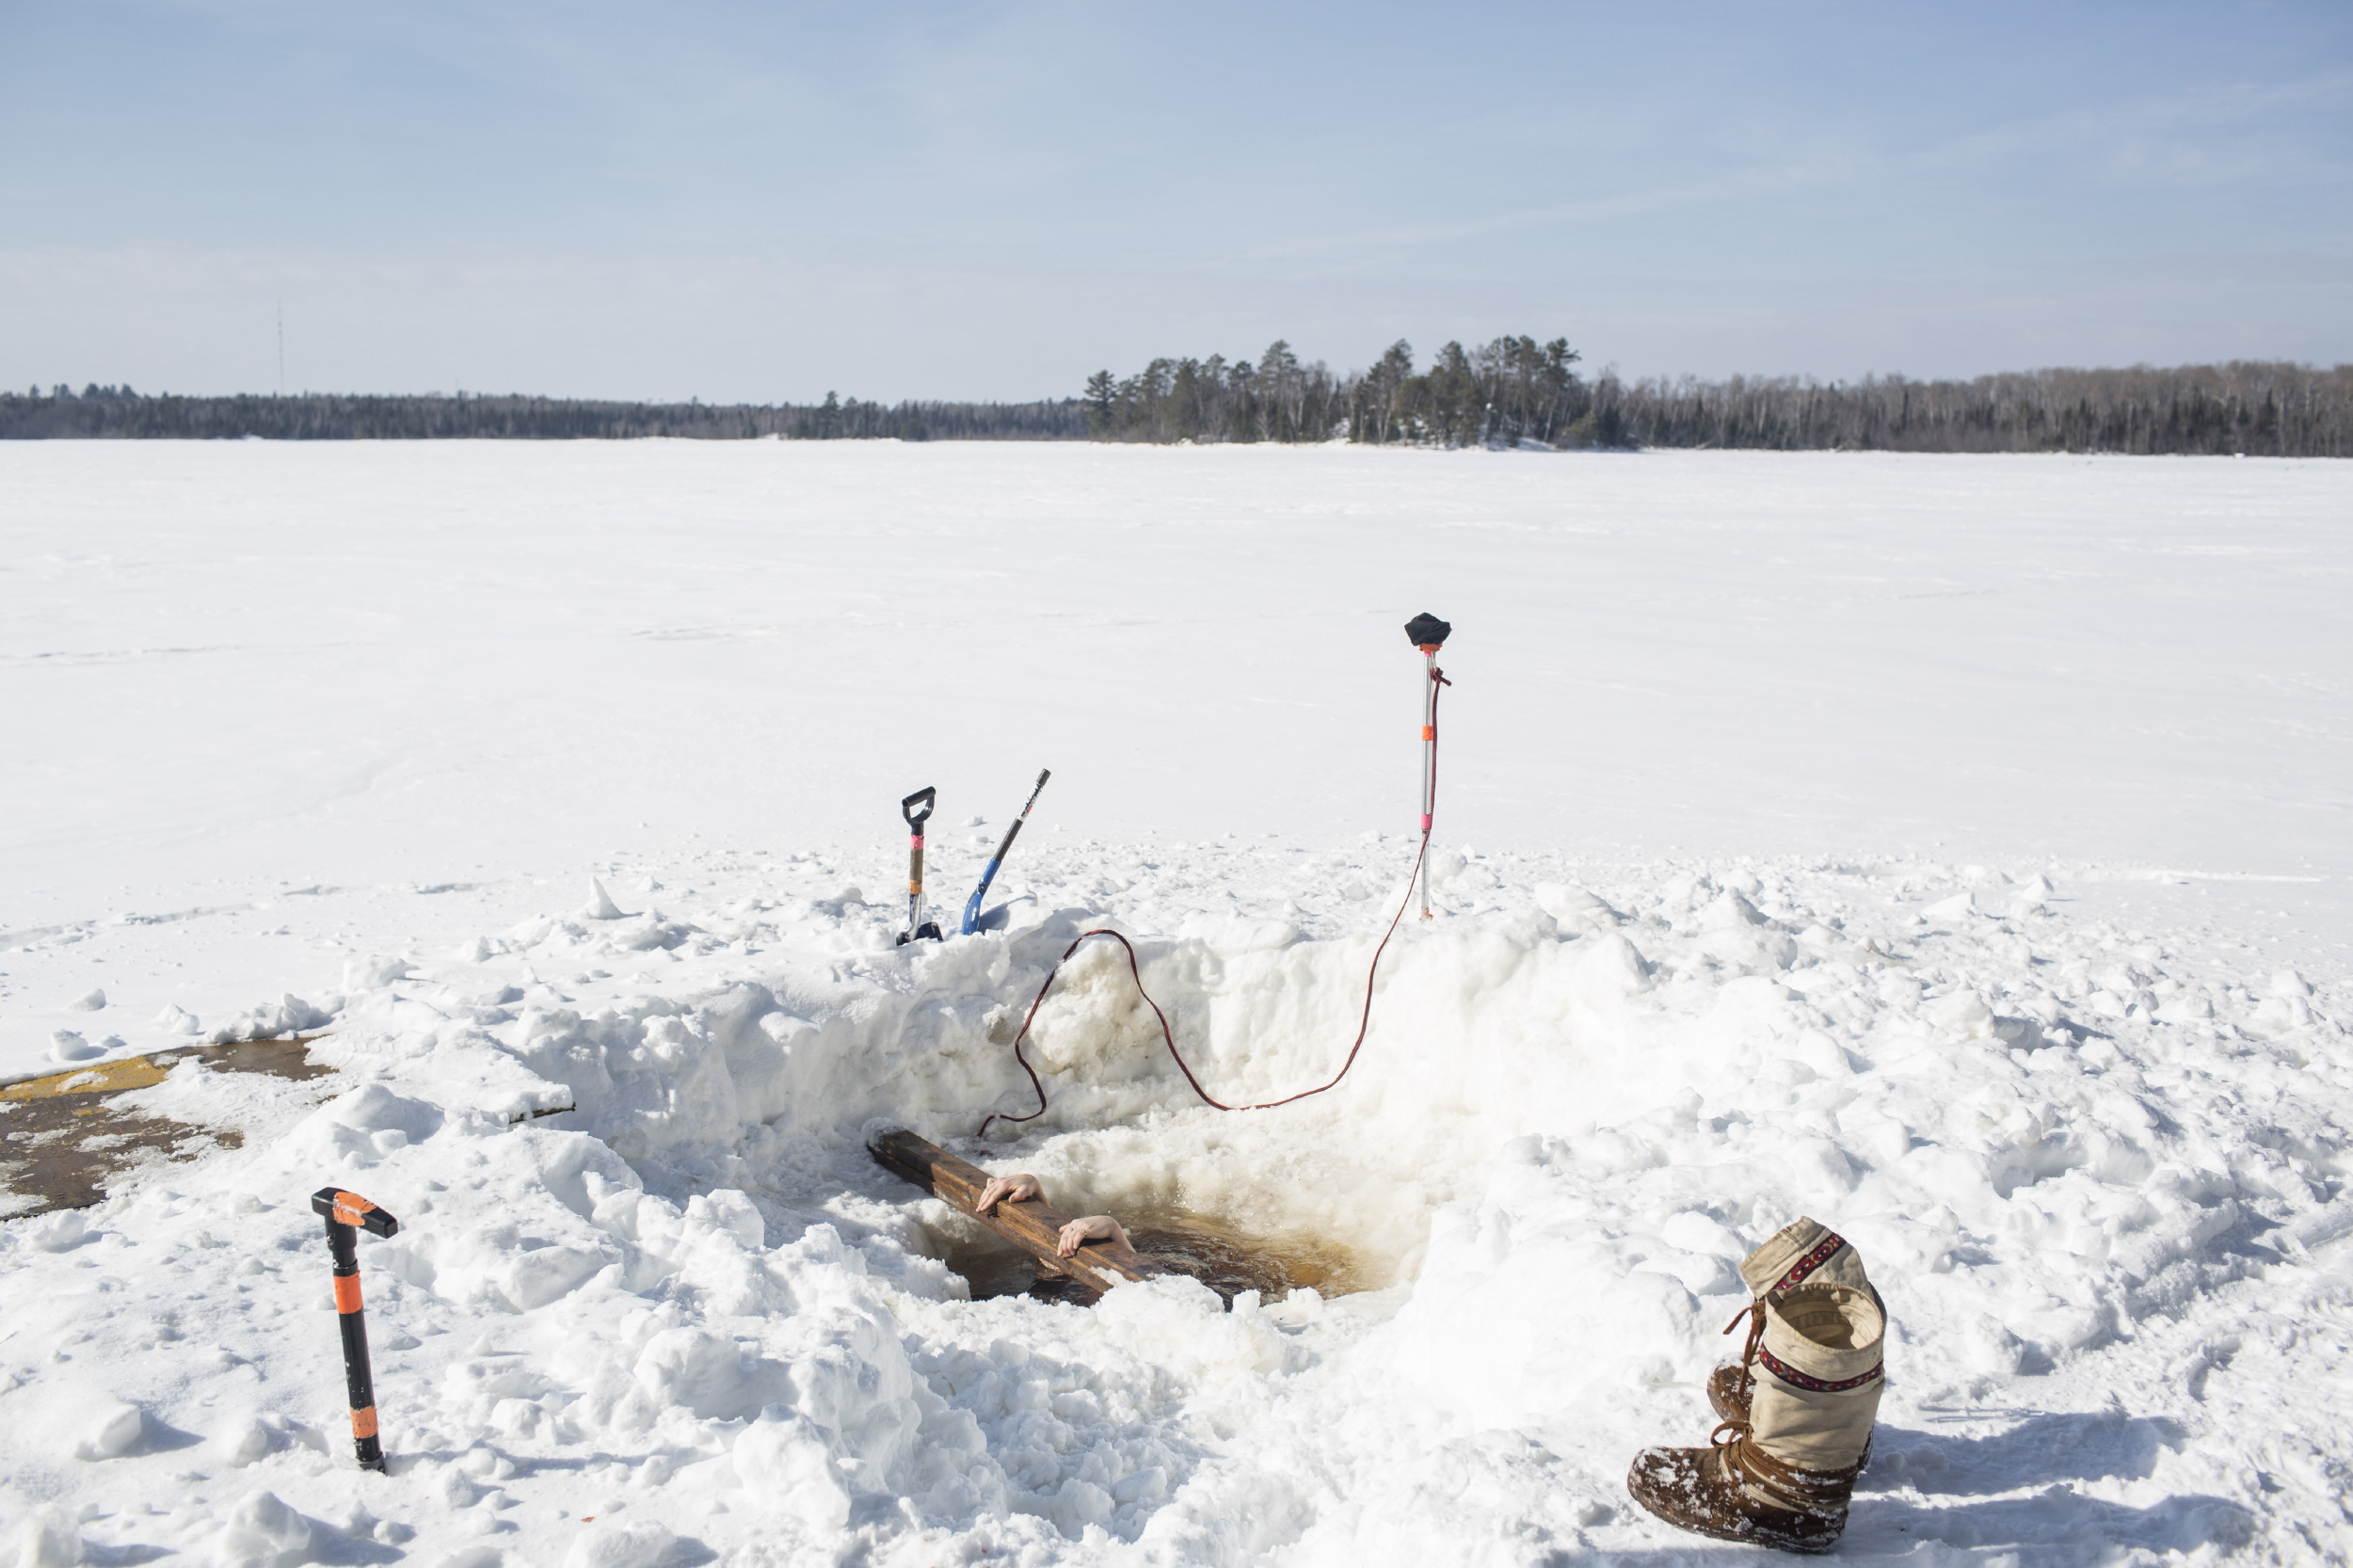 Winter In The Wild for Minnesota Monthly